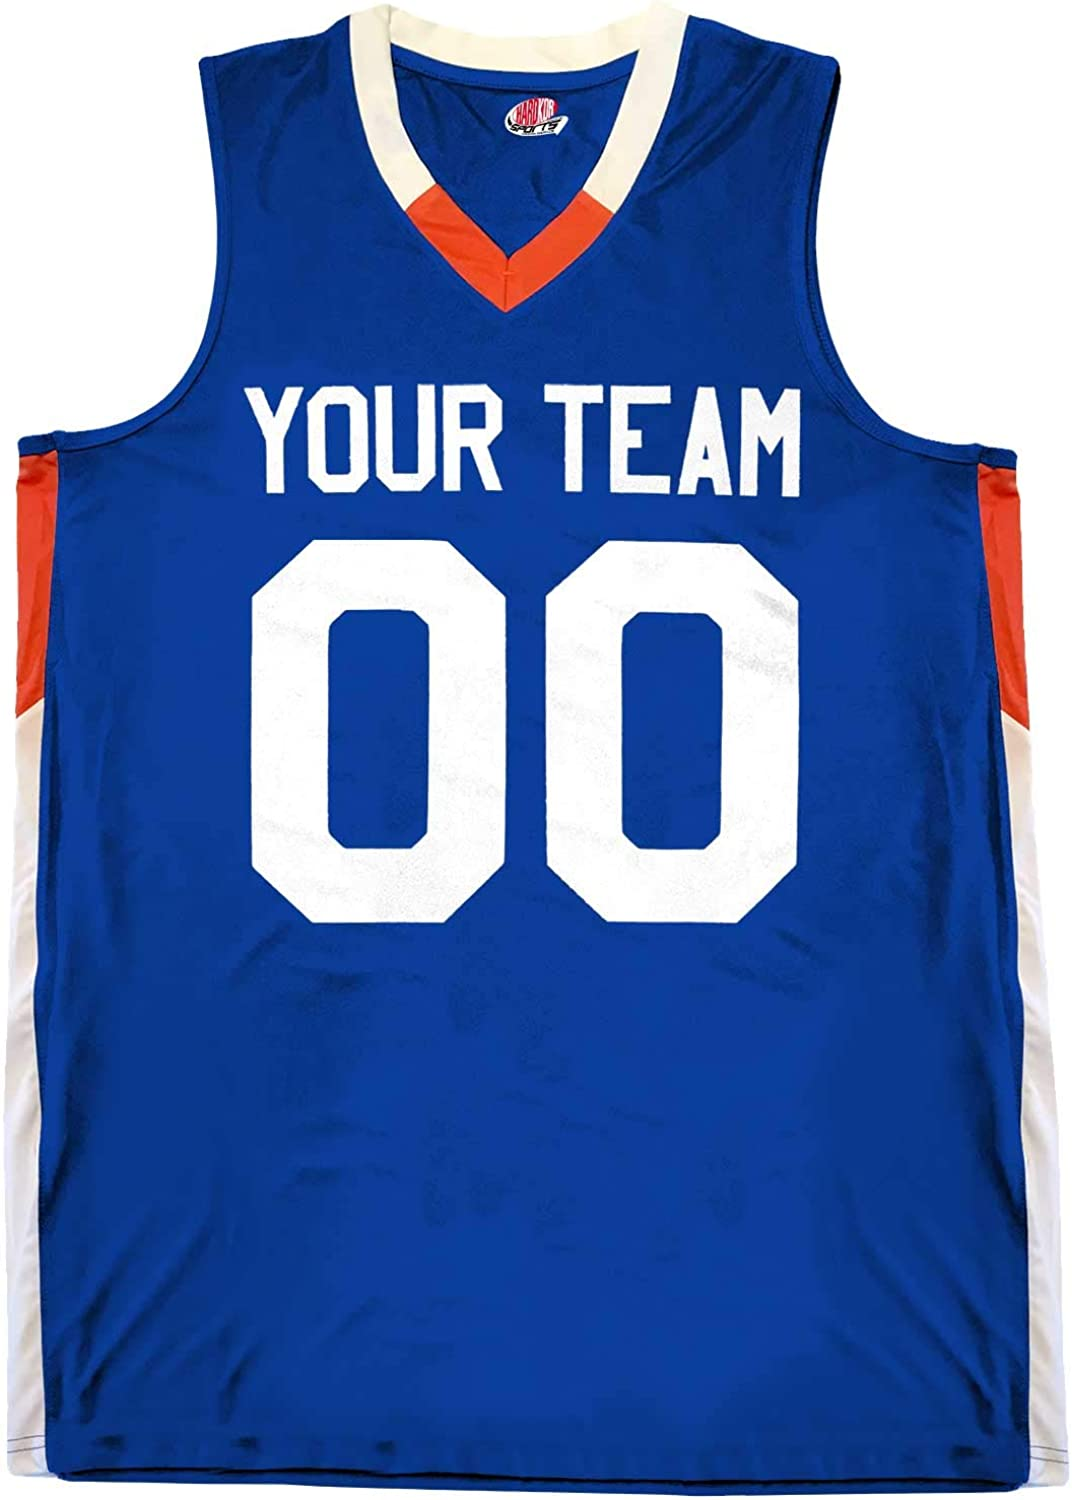 Custom Basketball Jersey Youth V-Neck 2 Names Color 35% OFF Max 75% OFF Trim with a